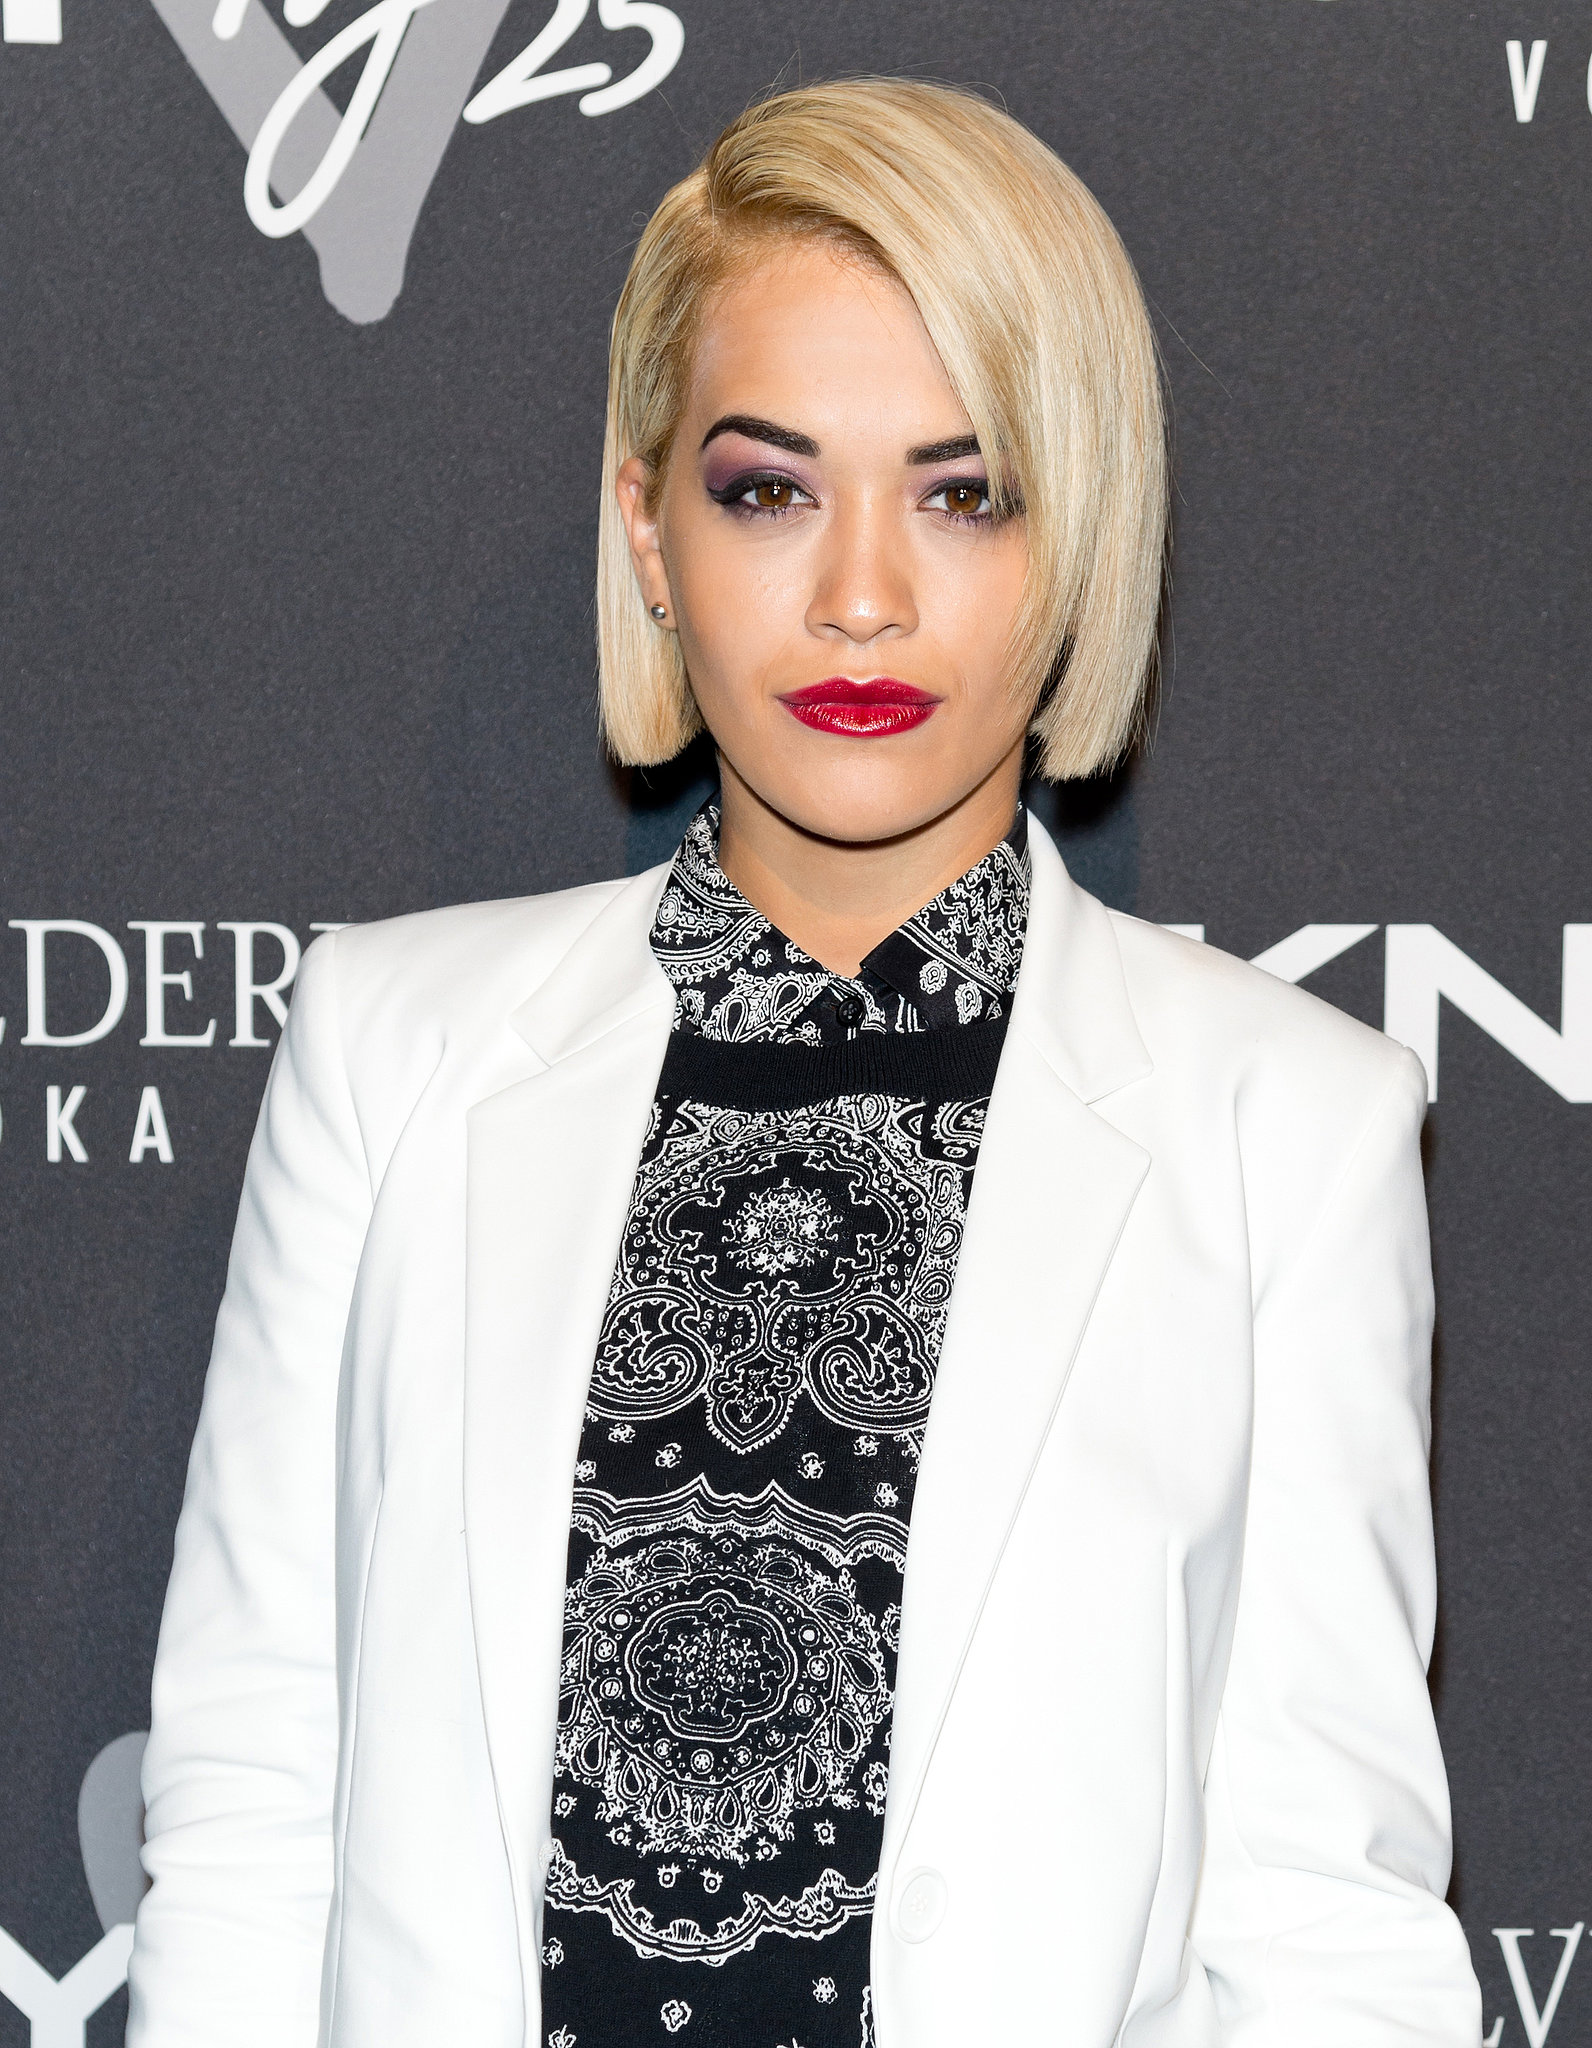 Rita Ora at the #DKNY25 Birthday Bash.